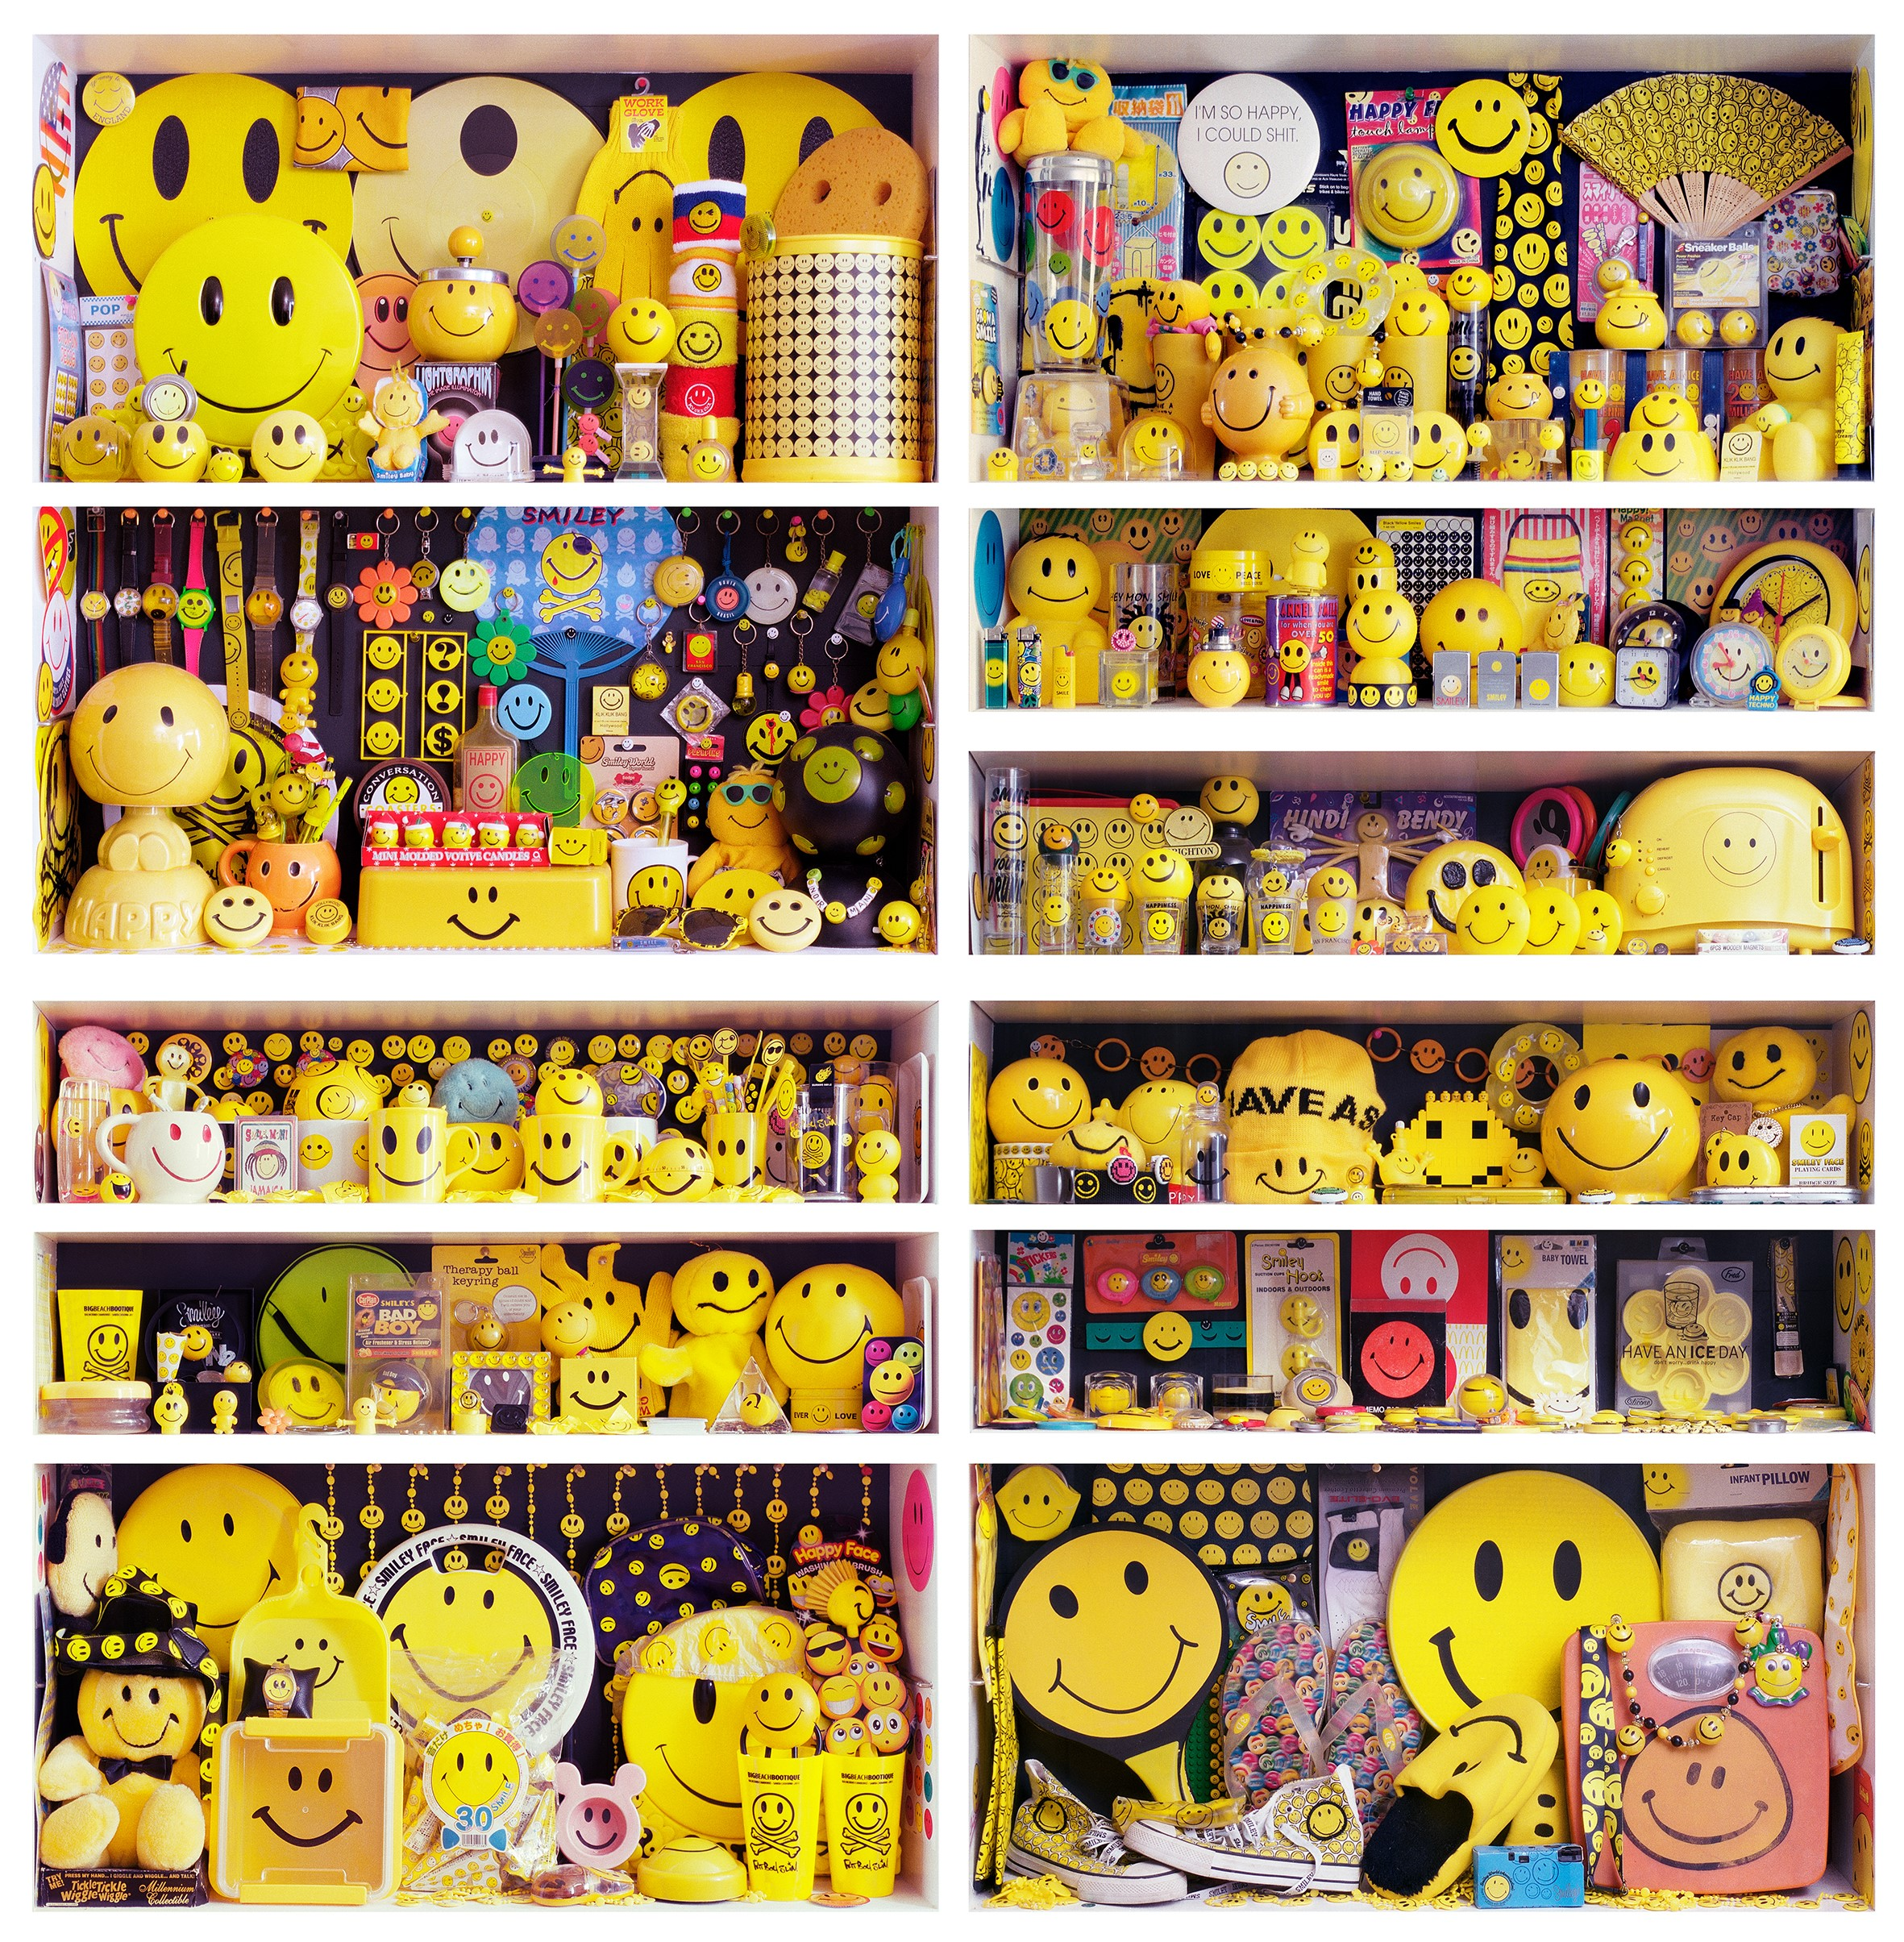 Fatboy Slim's Smiley Collection captured by British photographic artist Mark Vessey (Mark Vessey/PA)